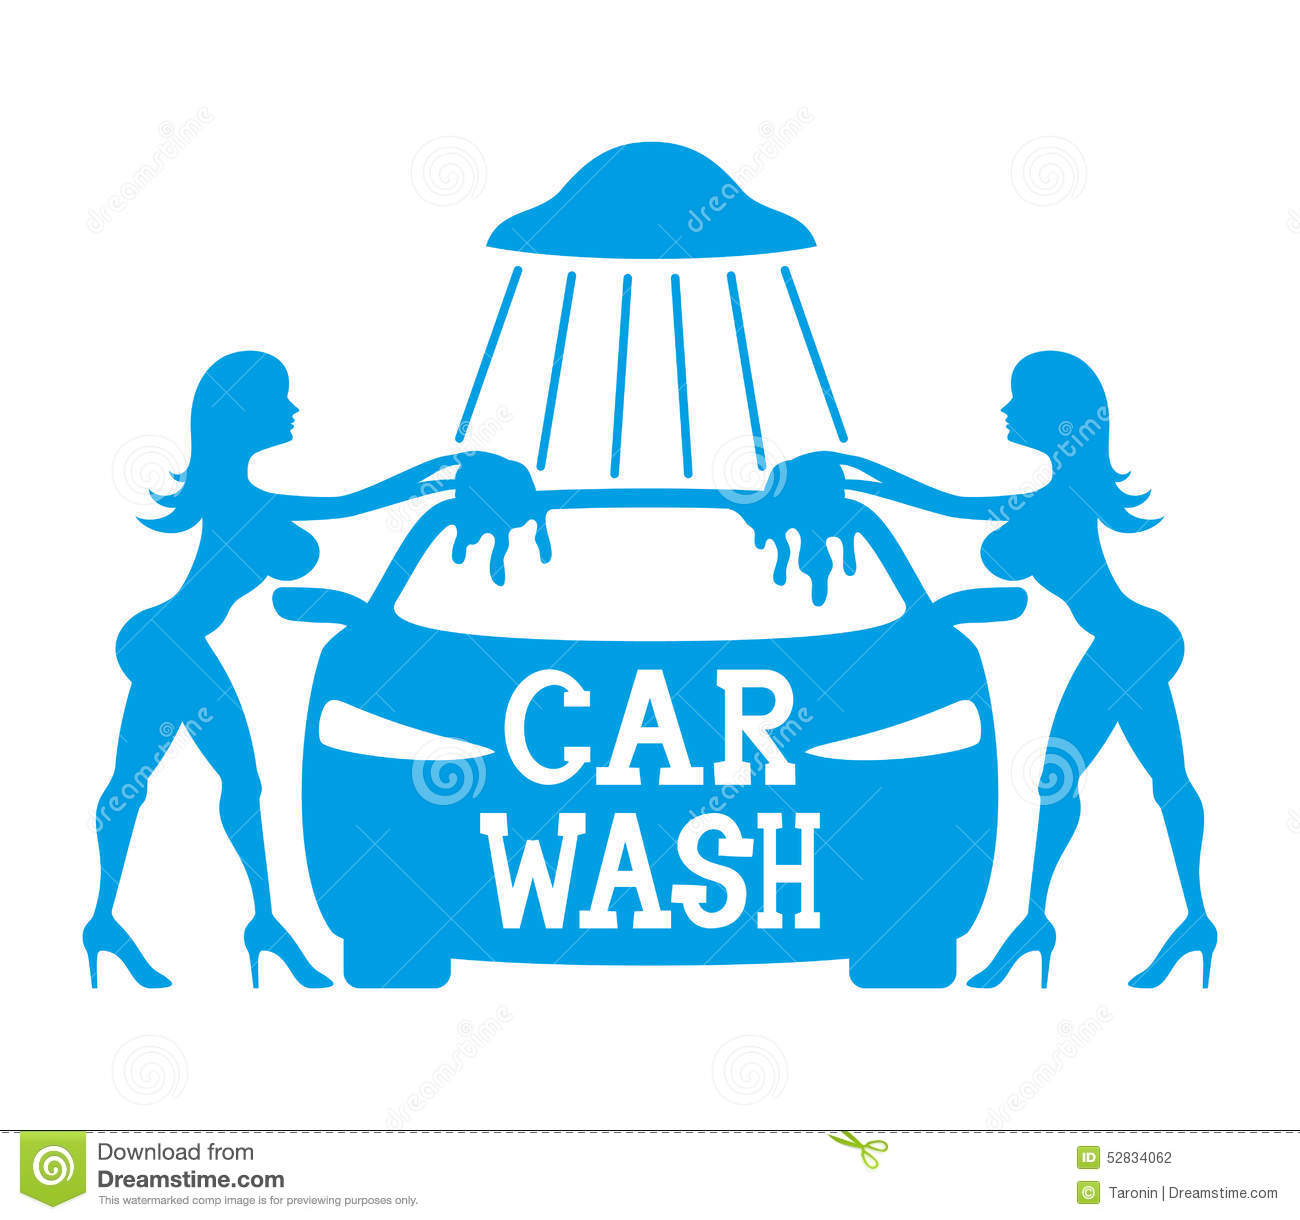 Carwash vectors and photos - free graphic resources